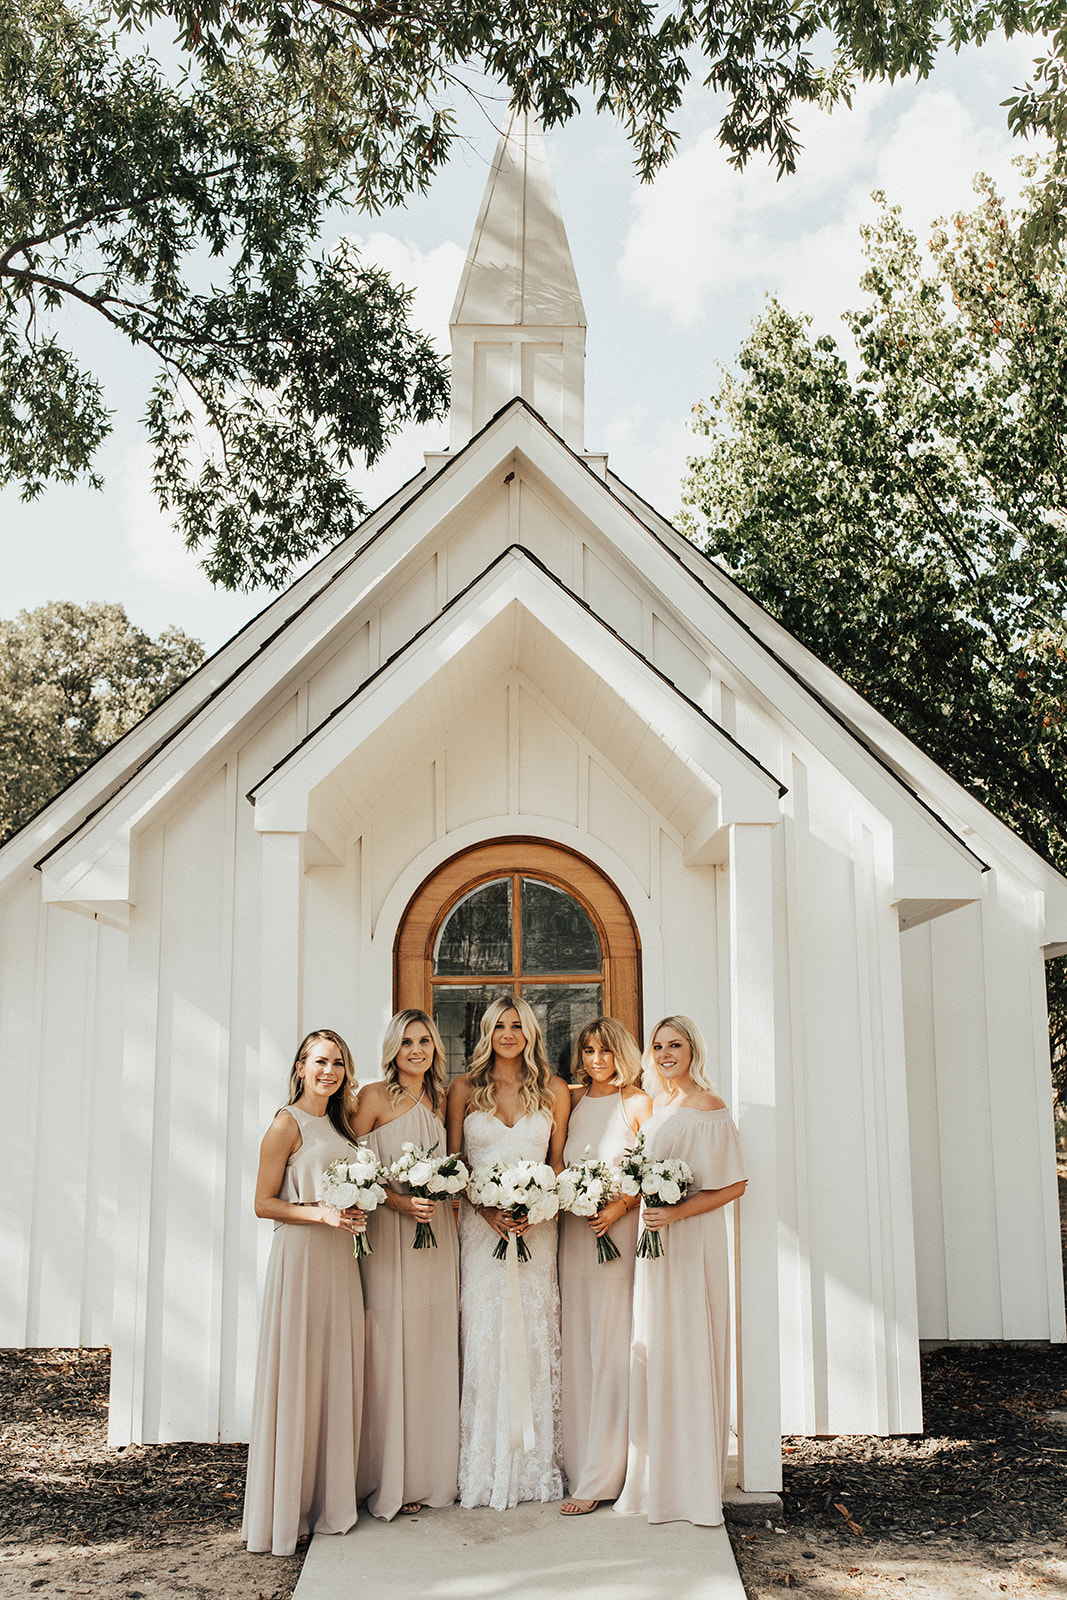 Taupe Bridesmaids Dresses for Wedding at The Emerson planned by Alexa Kay Events